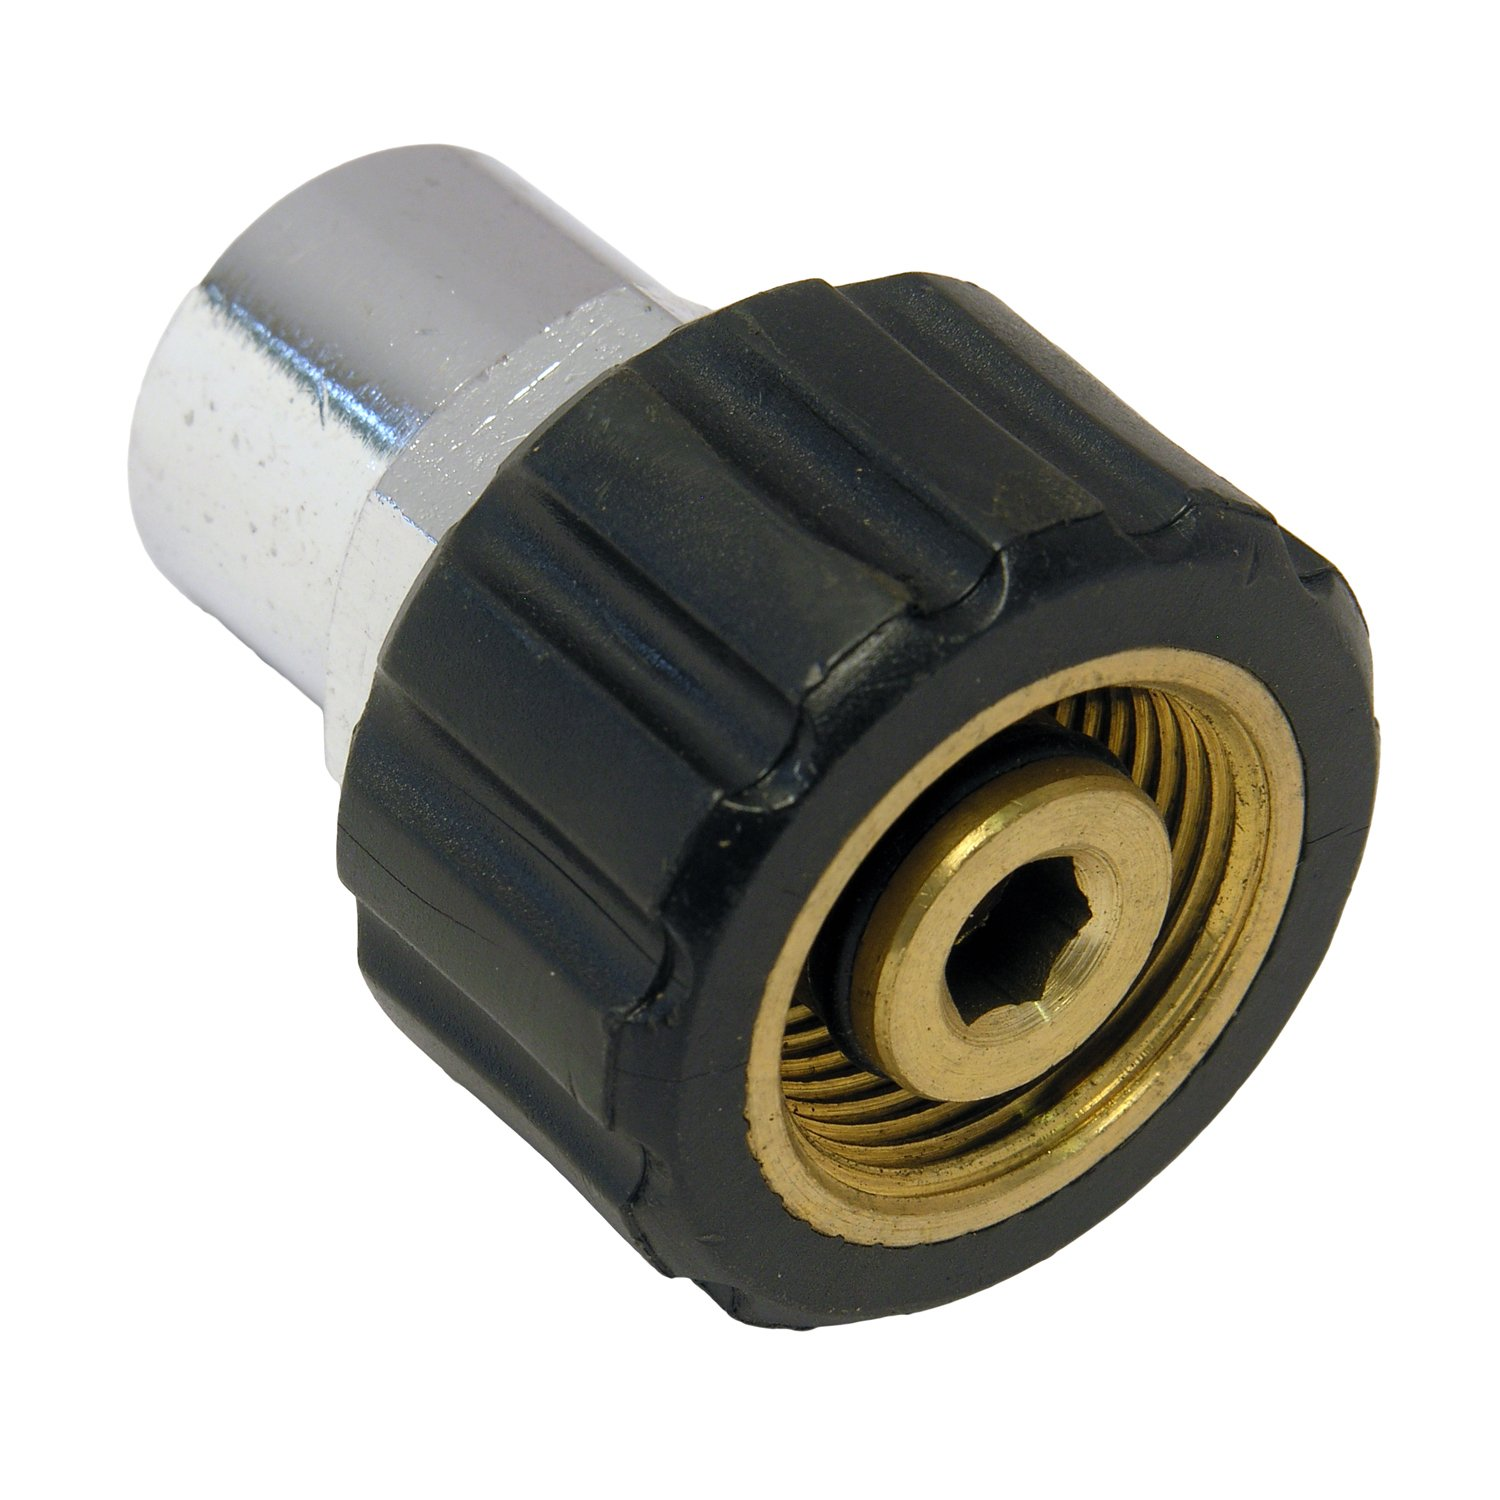 LASCO 60-1027 Coupler for Pressure Washer, Female 22mm Coupler, 3/8-Inch Female Pipe Thread by LASCO